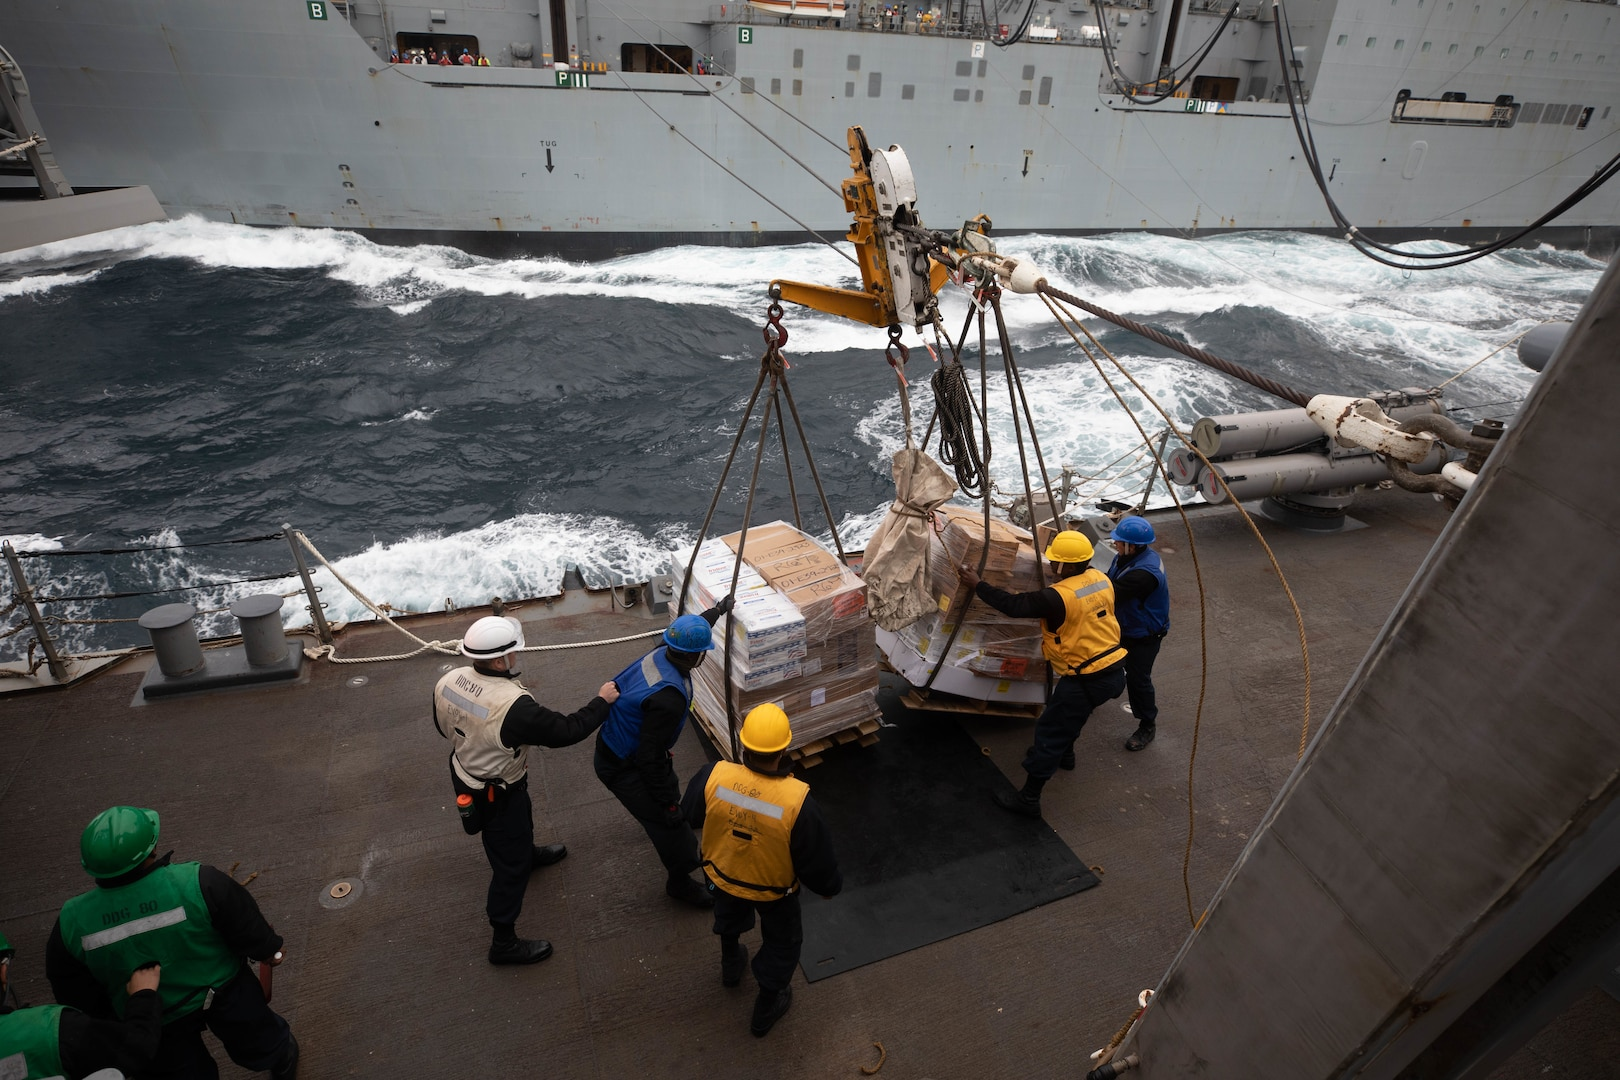 Sailors aboard the Arleigh Burke-class guided-missile destroyer USS Roosevelt (DDG 80) receive pallets of food stores during a replenishment-at-sea with the dry cargo ship USNS William McClean (T-AKE 12), April 1, 2021.